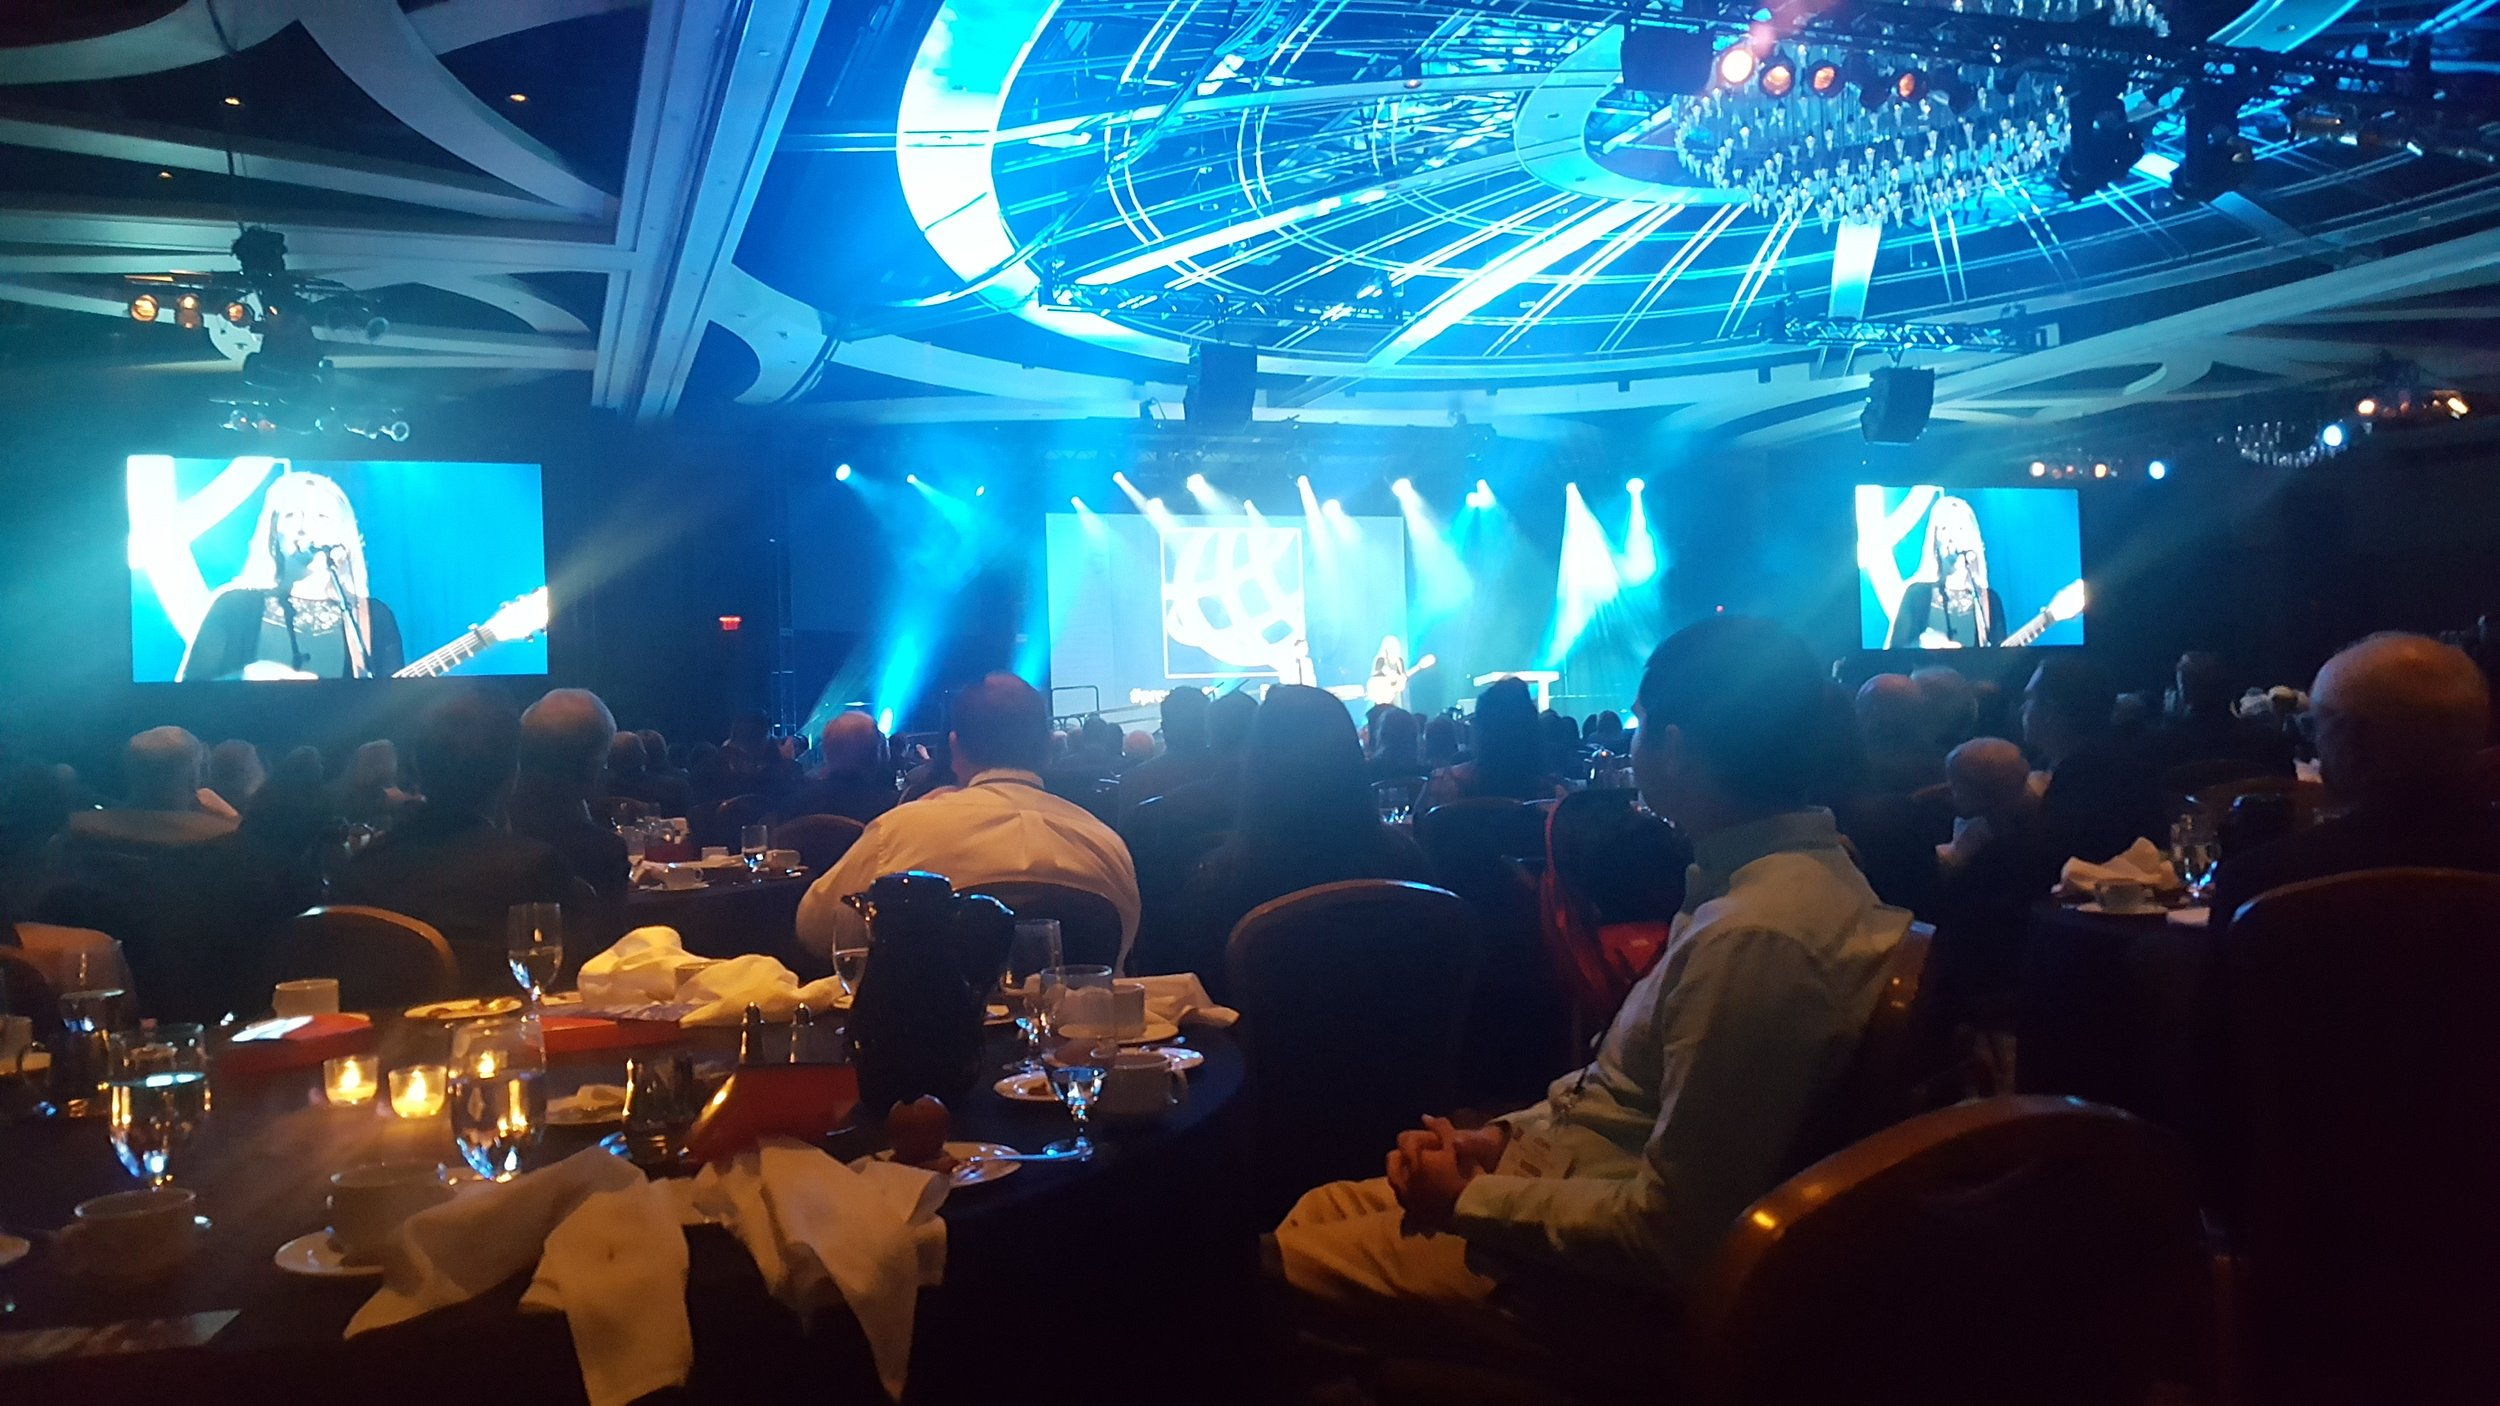 Closing Gala Dinner at the end of the week with speakers, awards and worship.